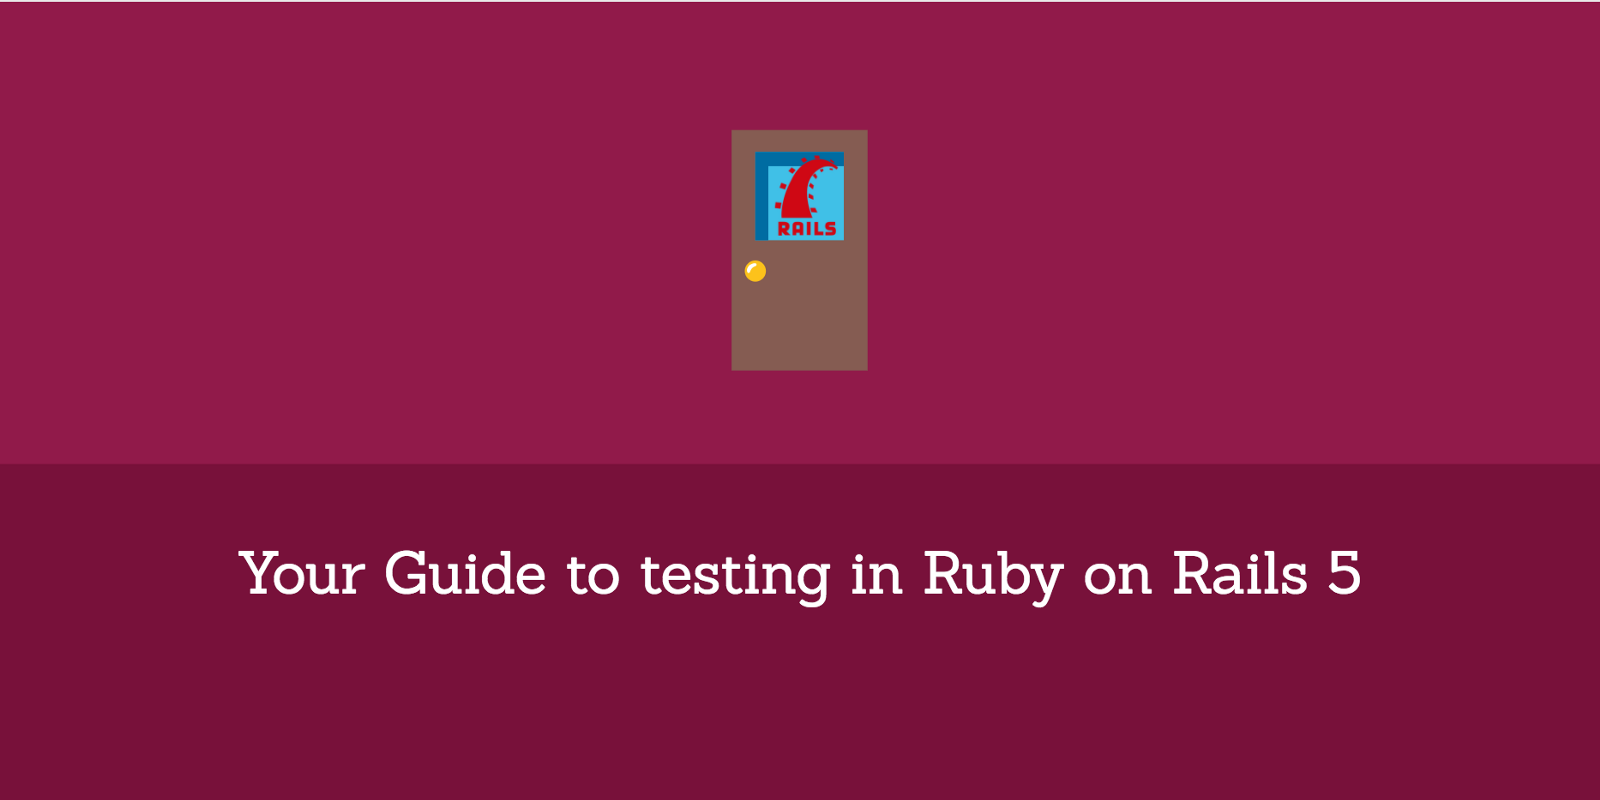 /your-guide-to-testing-in-ruby-on-rails-5-c8bd122e38ad feature image